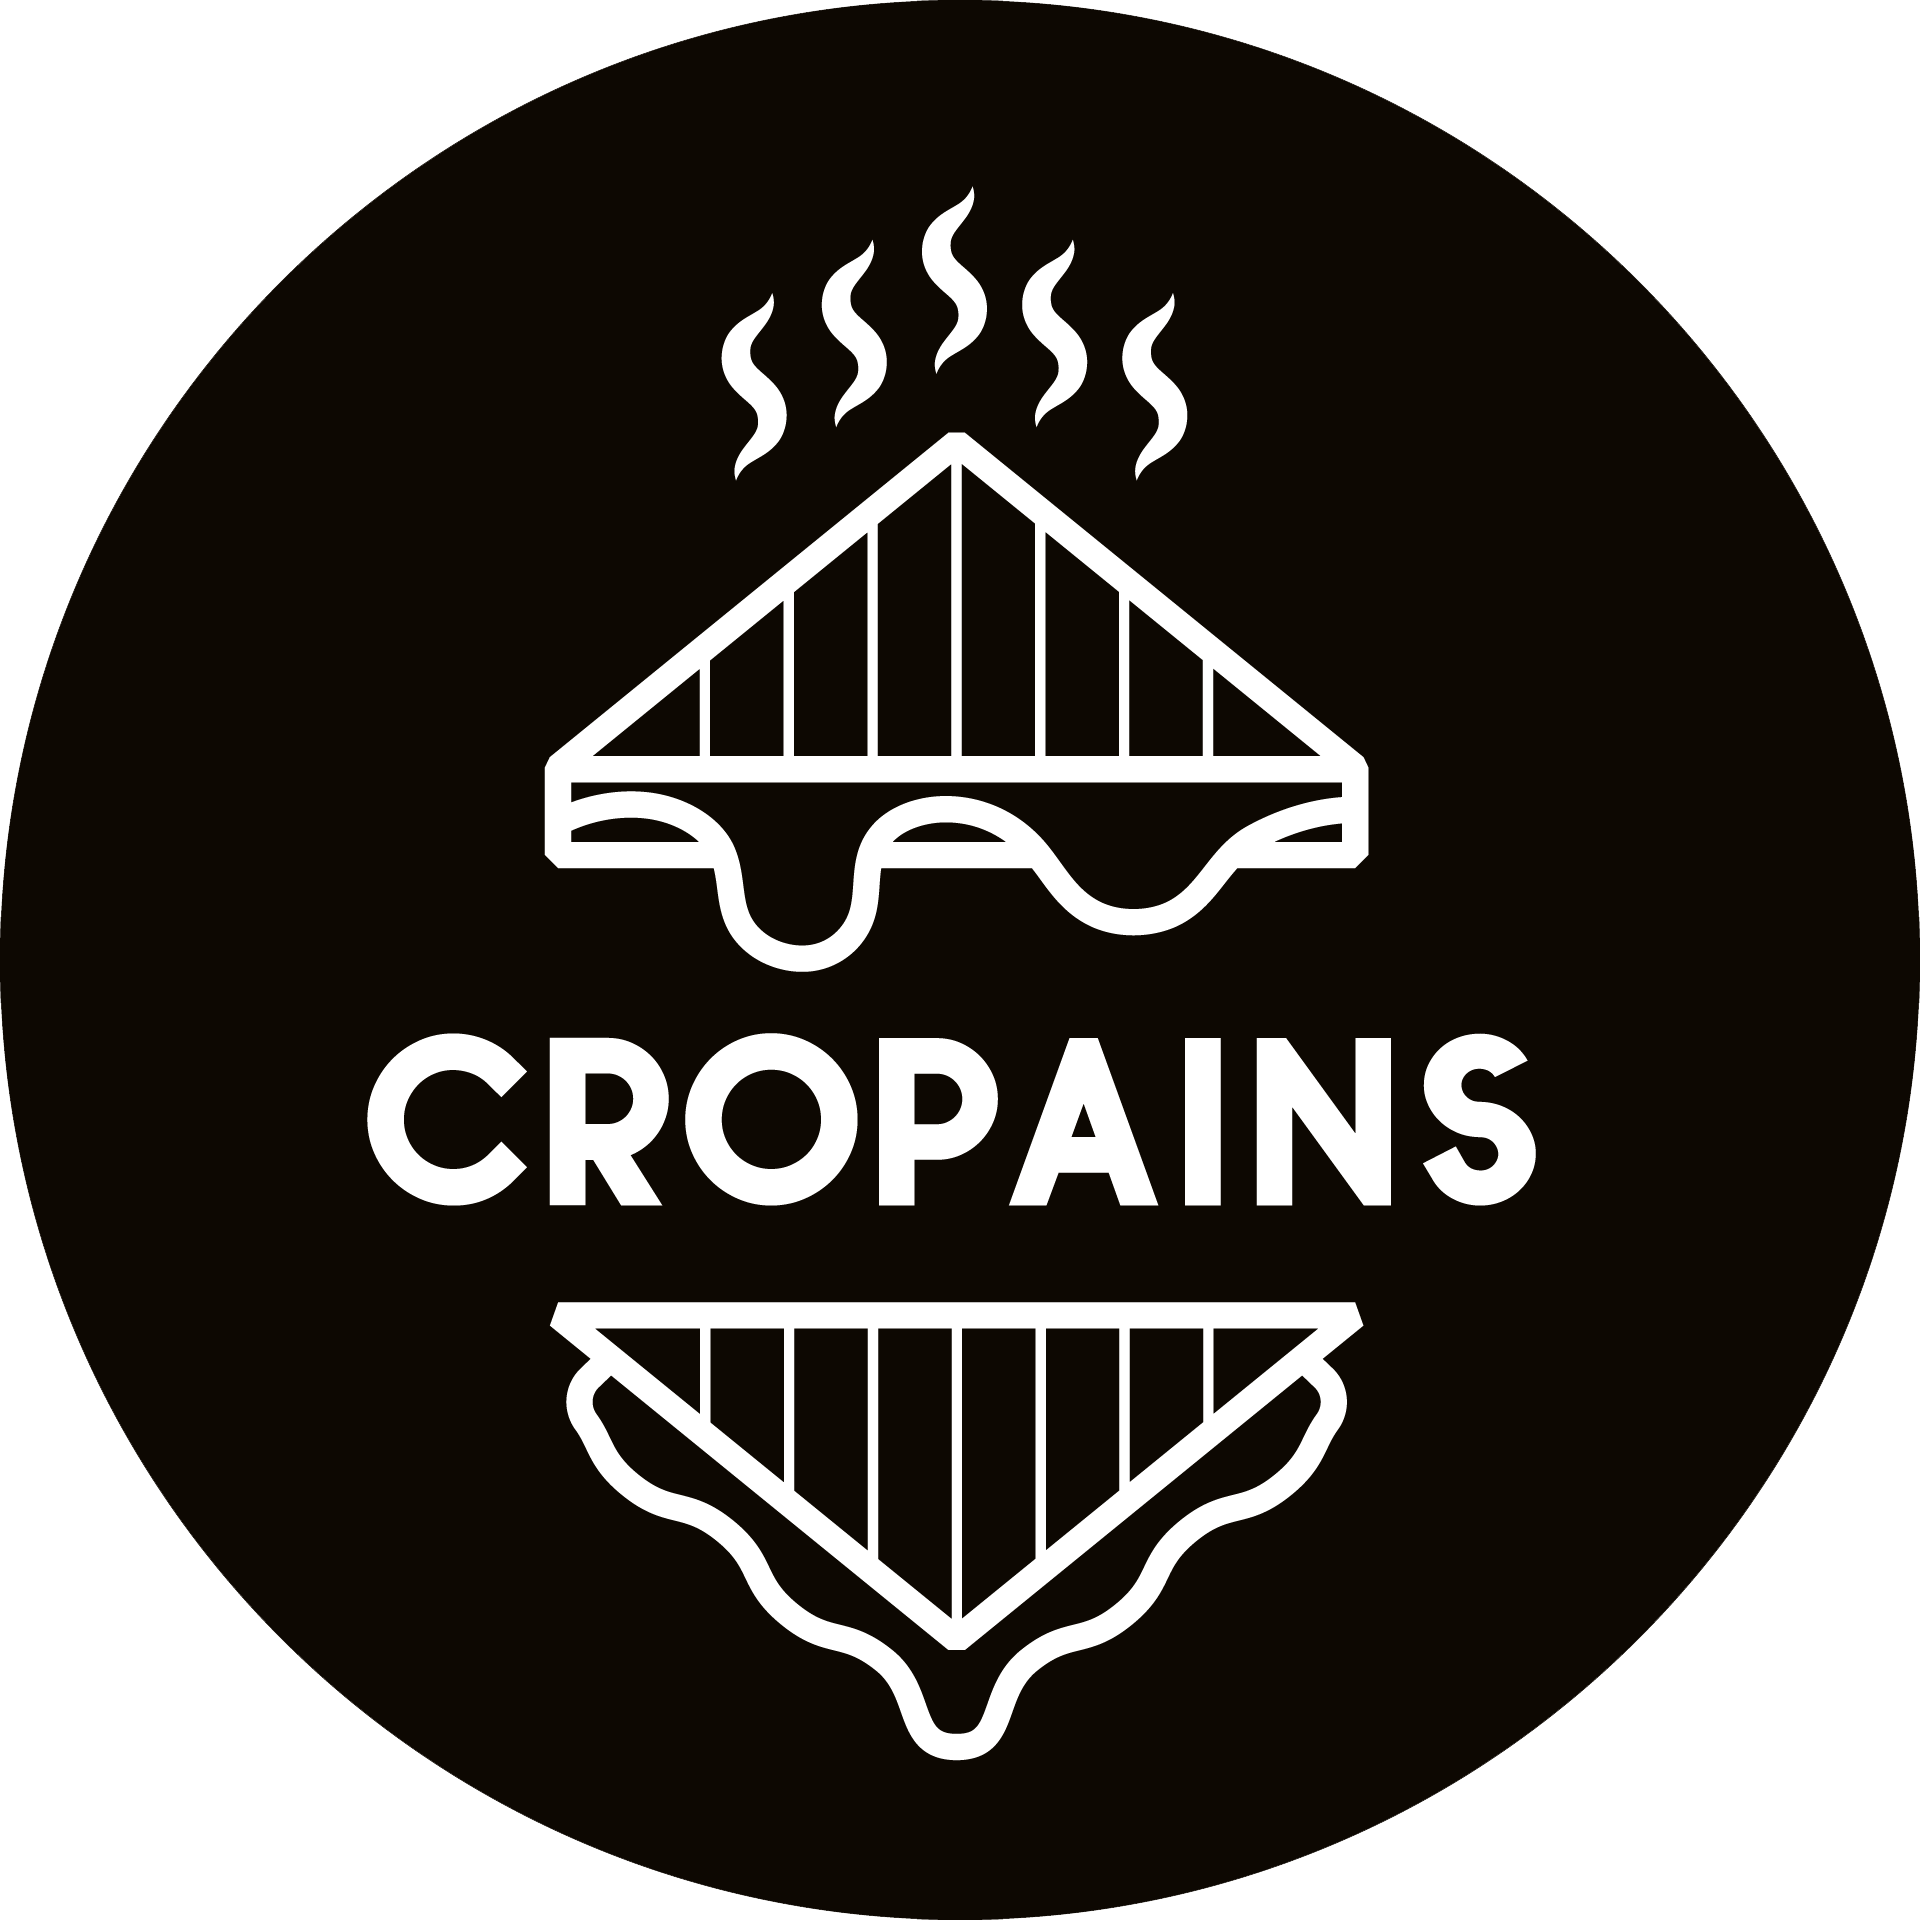 Cropains